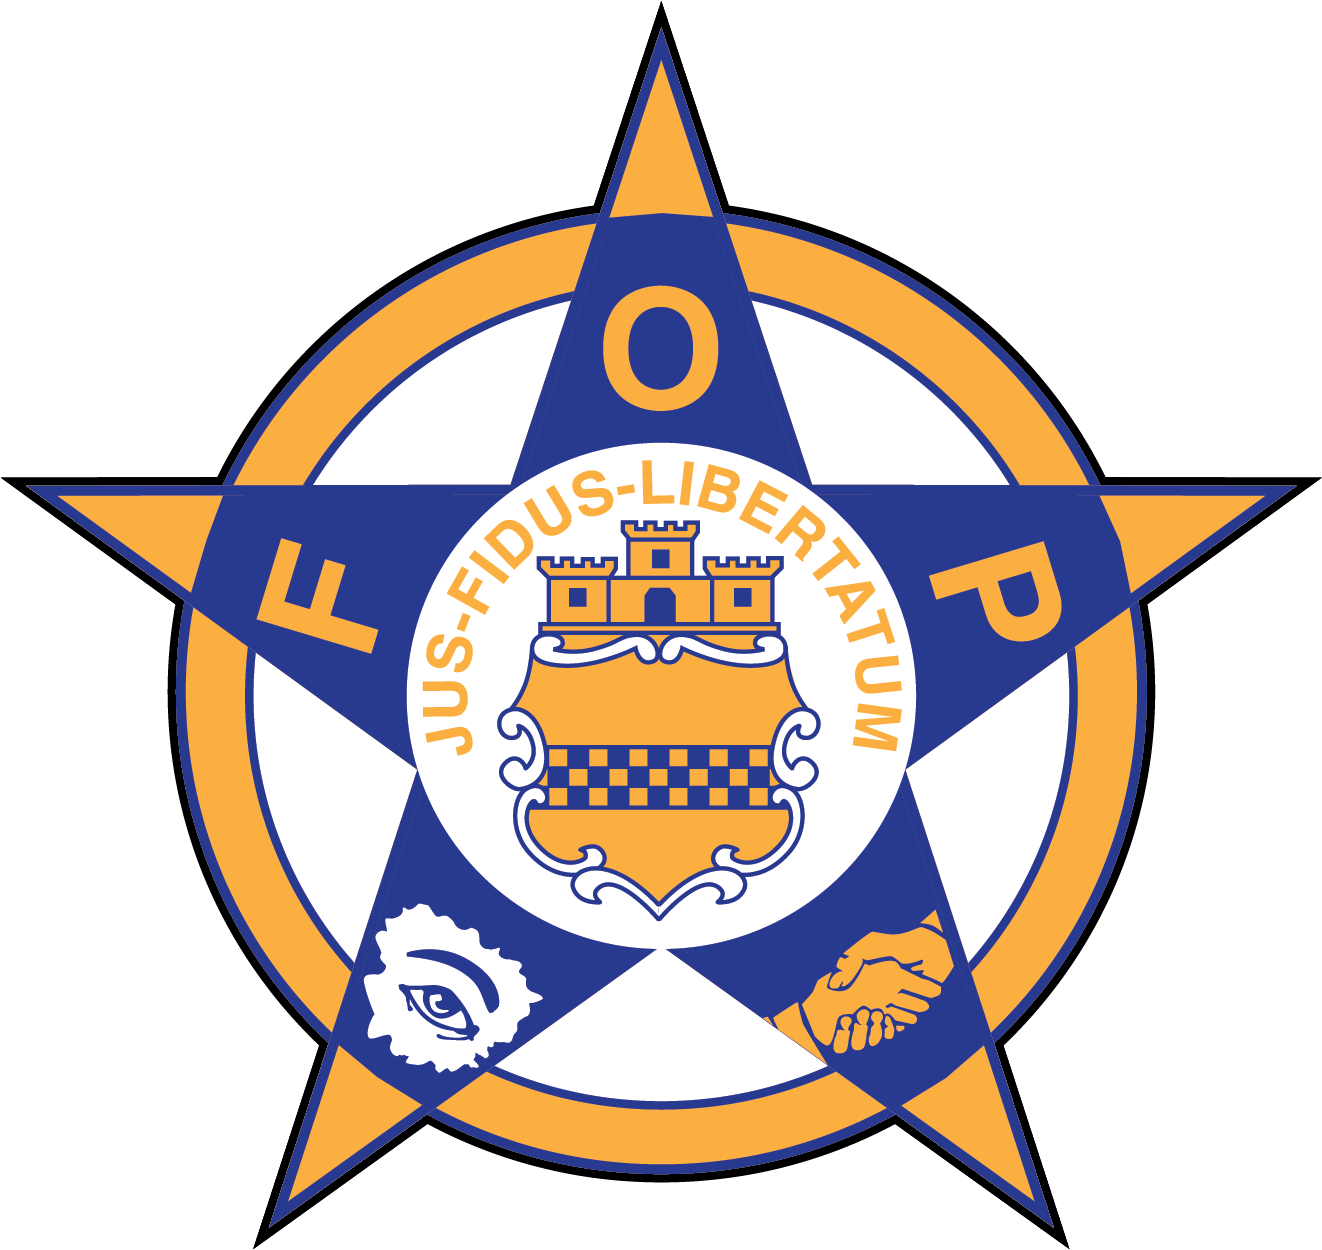 Fraternal order of police clipart clipart free download About | FOP - Lodge 77 - Fairfax, VA clipart free download